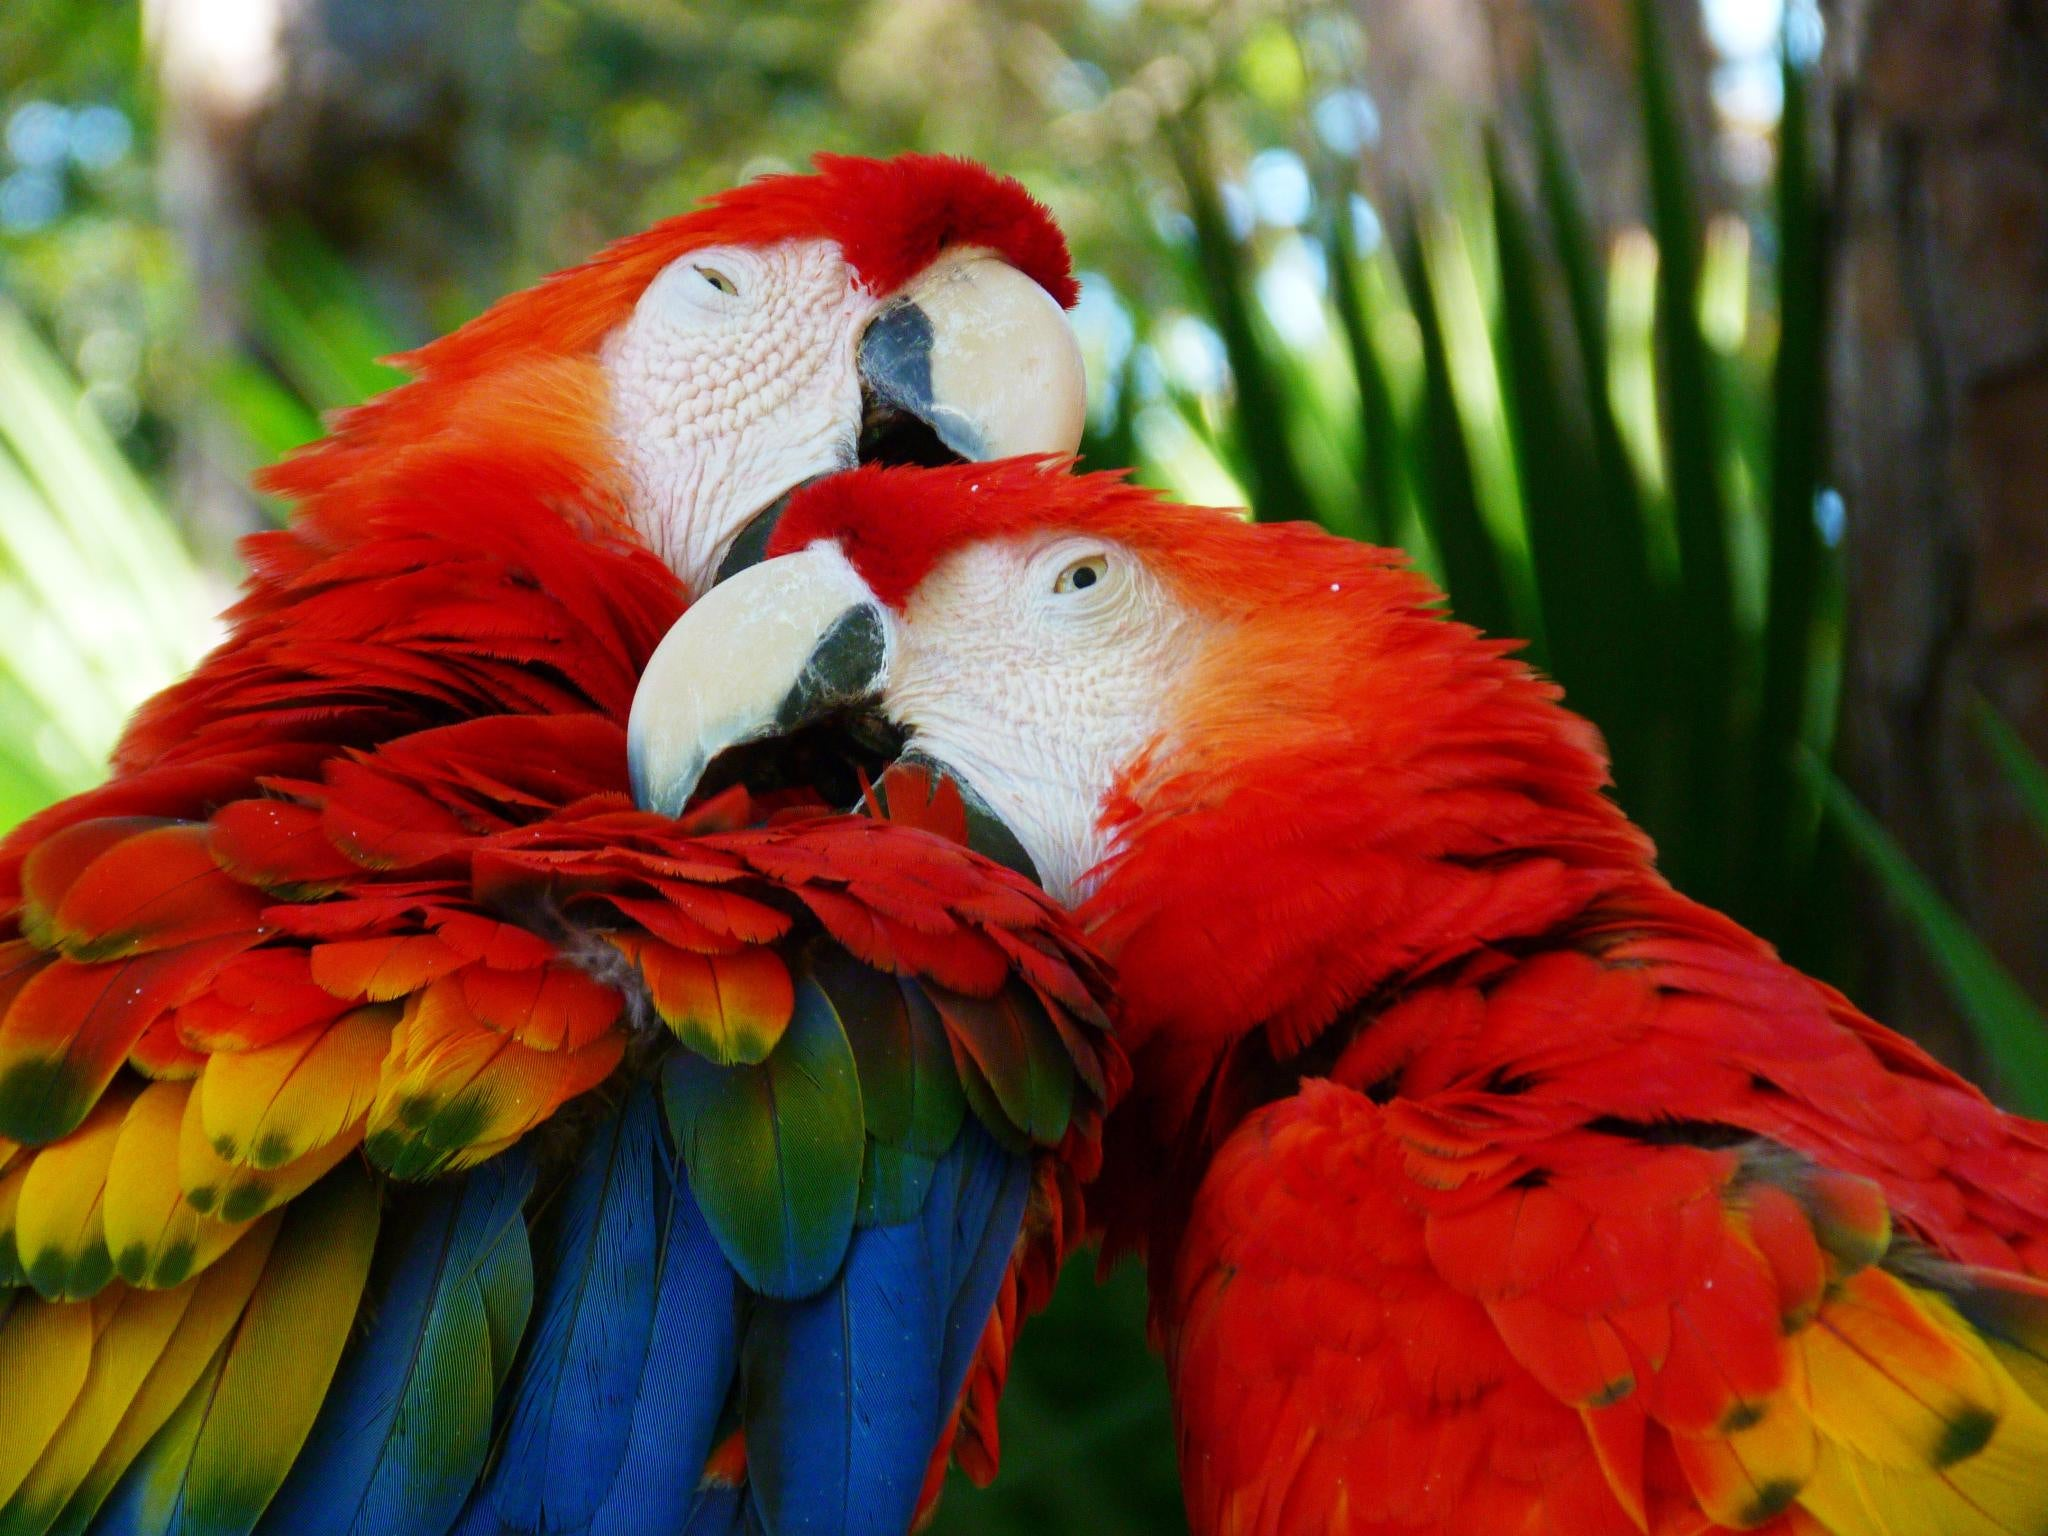 Prehistoric Americans May Have Farmed Macaws in